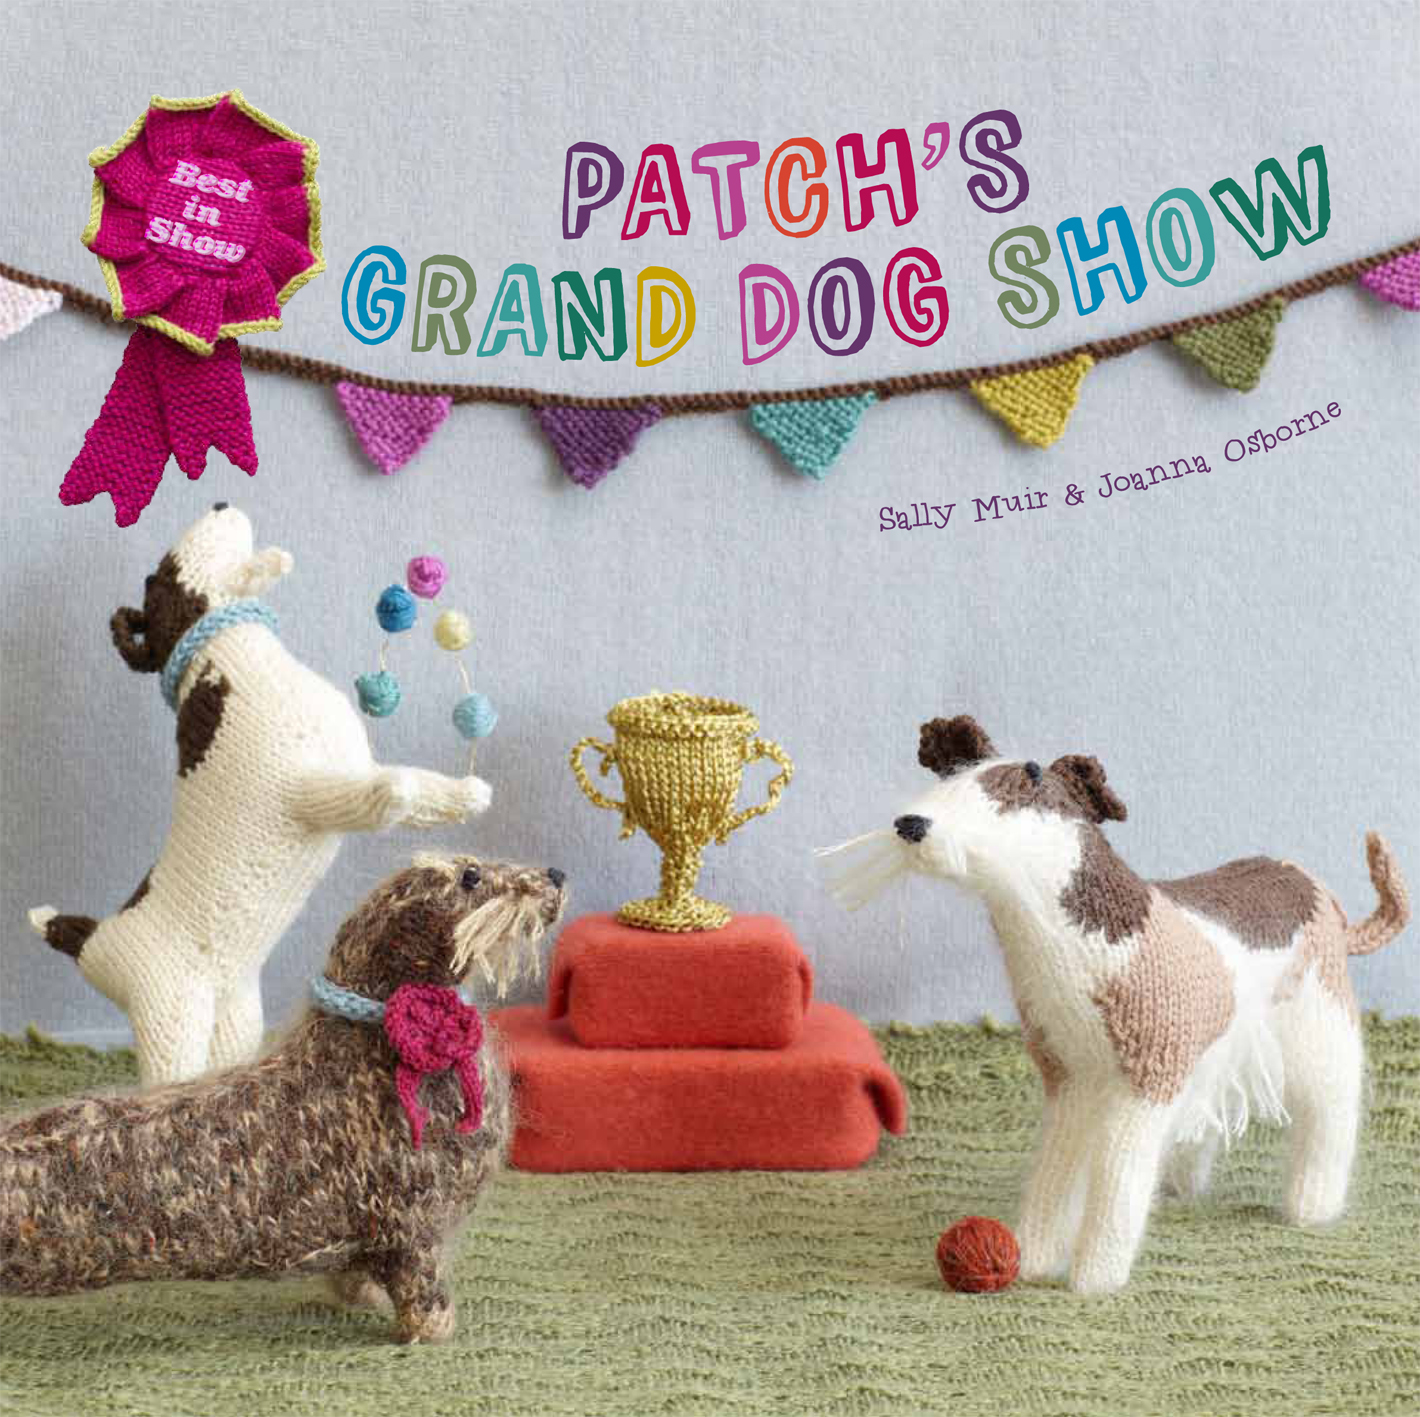 Patch's Grand Dog Show